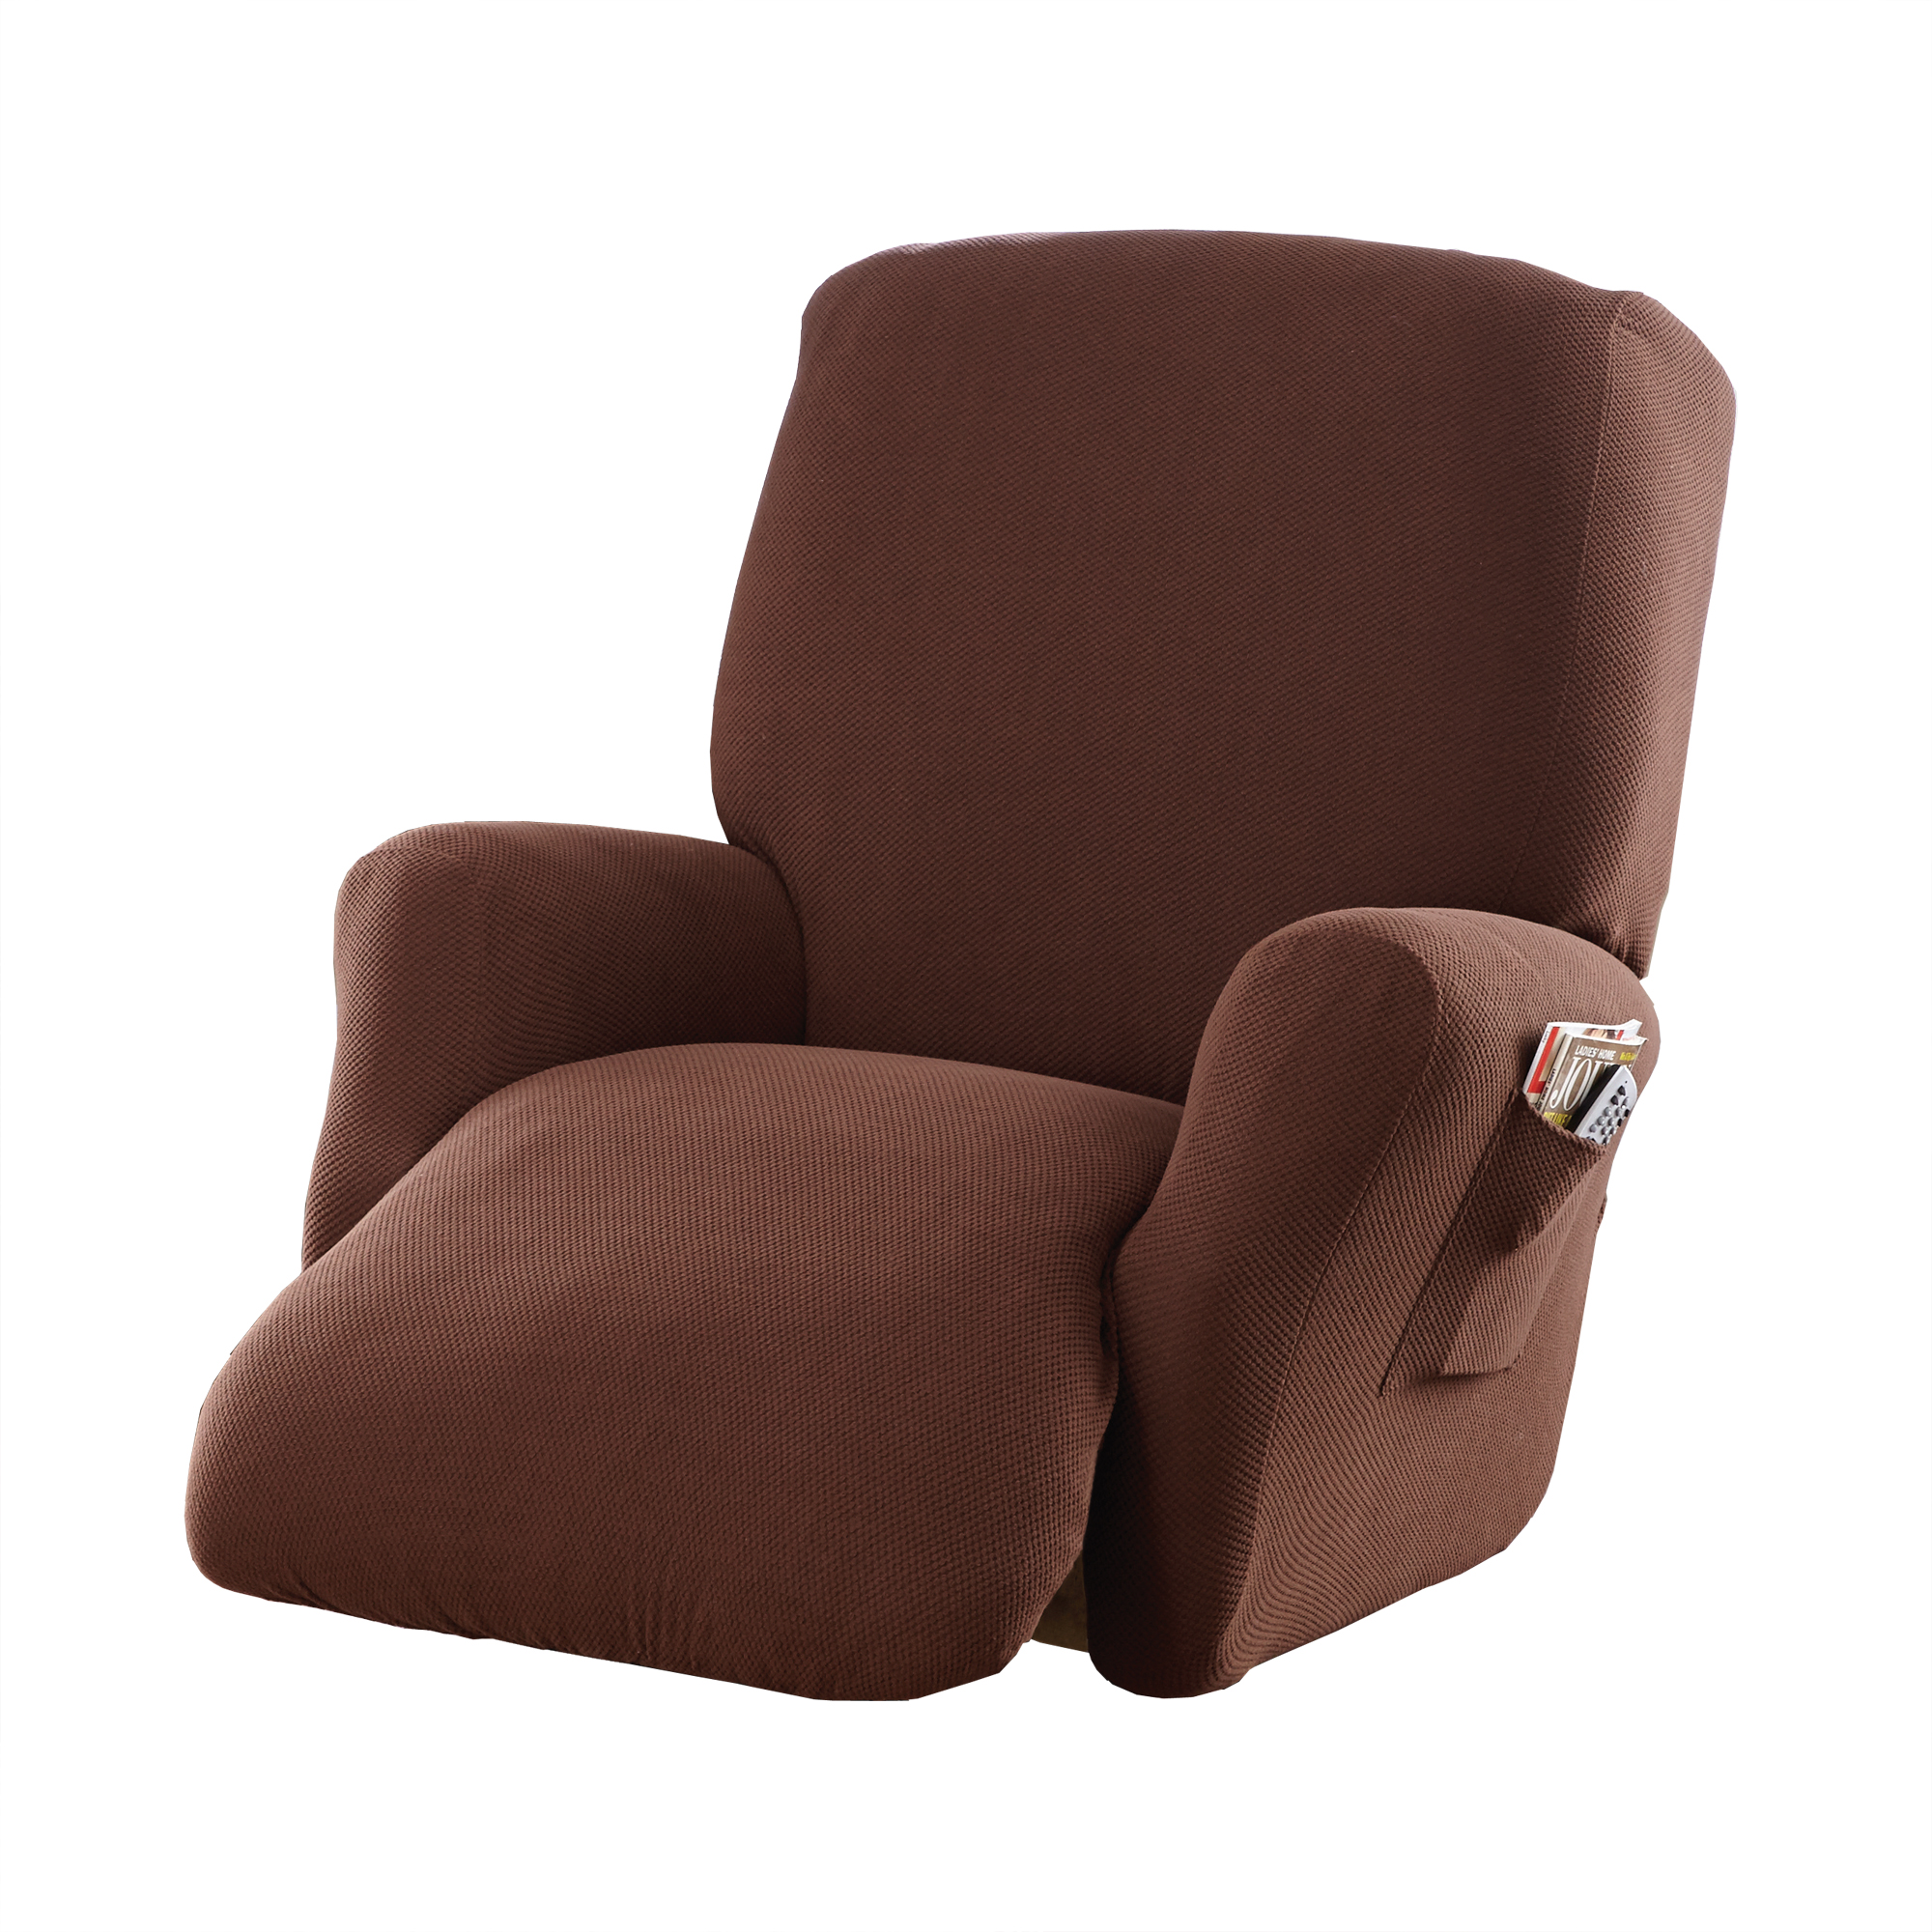 Genial Mainstays Stretch Pixel 4   Piece Recliner Chair Furniture Cover /  Slipcover, Costa Brown   Walmart.com